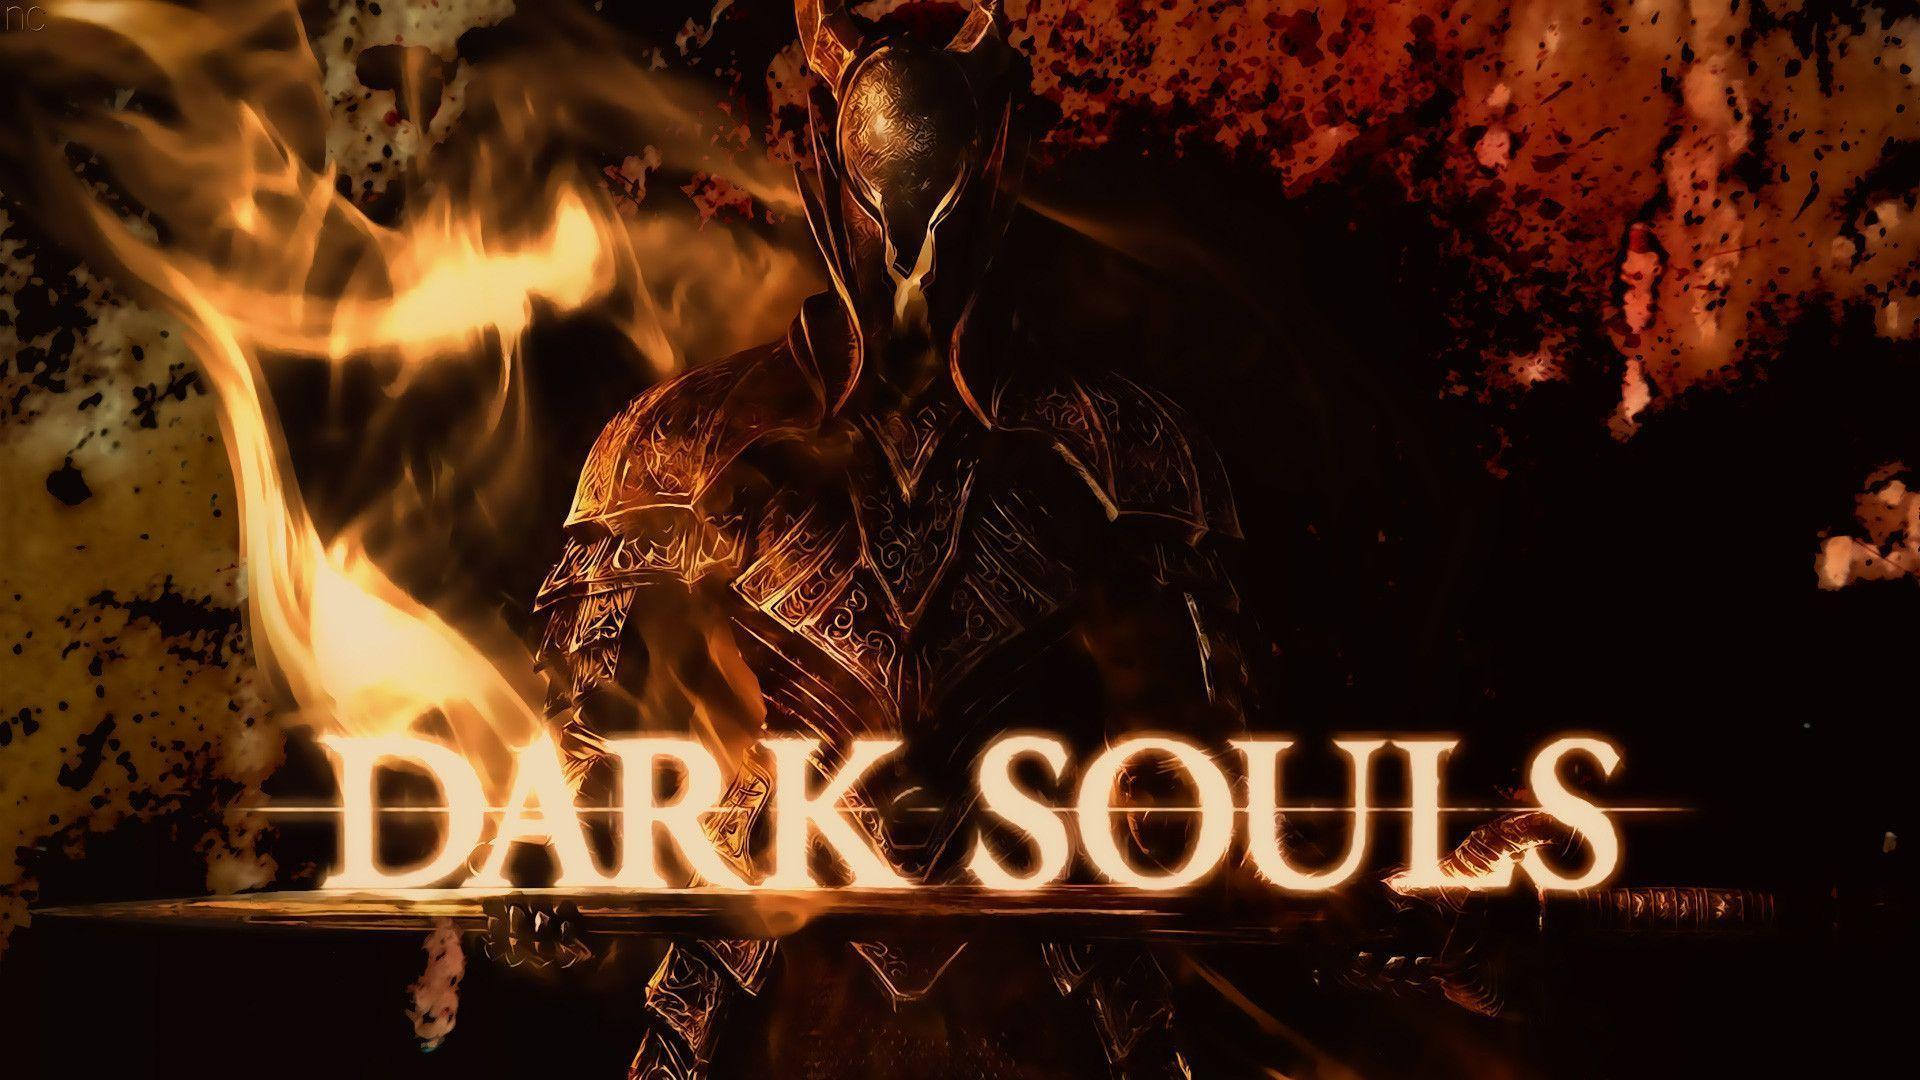 dark souls wallpaper breaking - photo #21